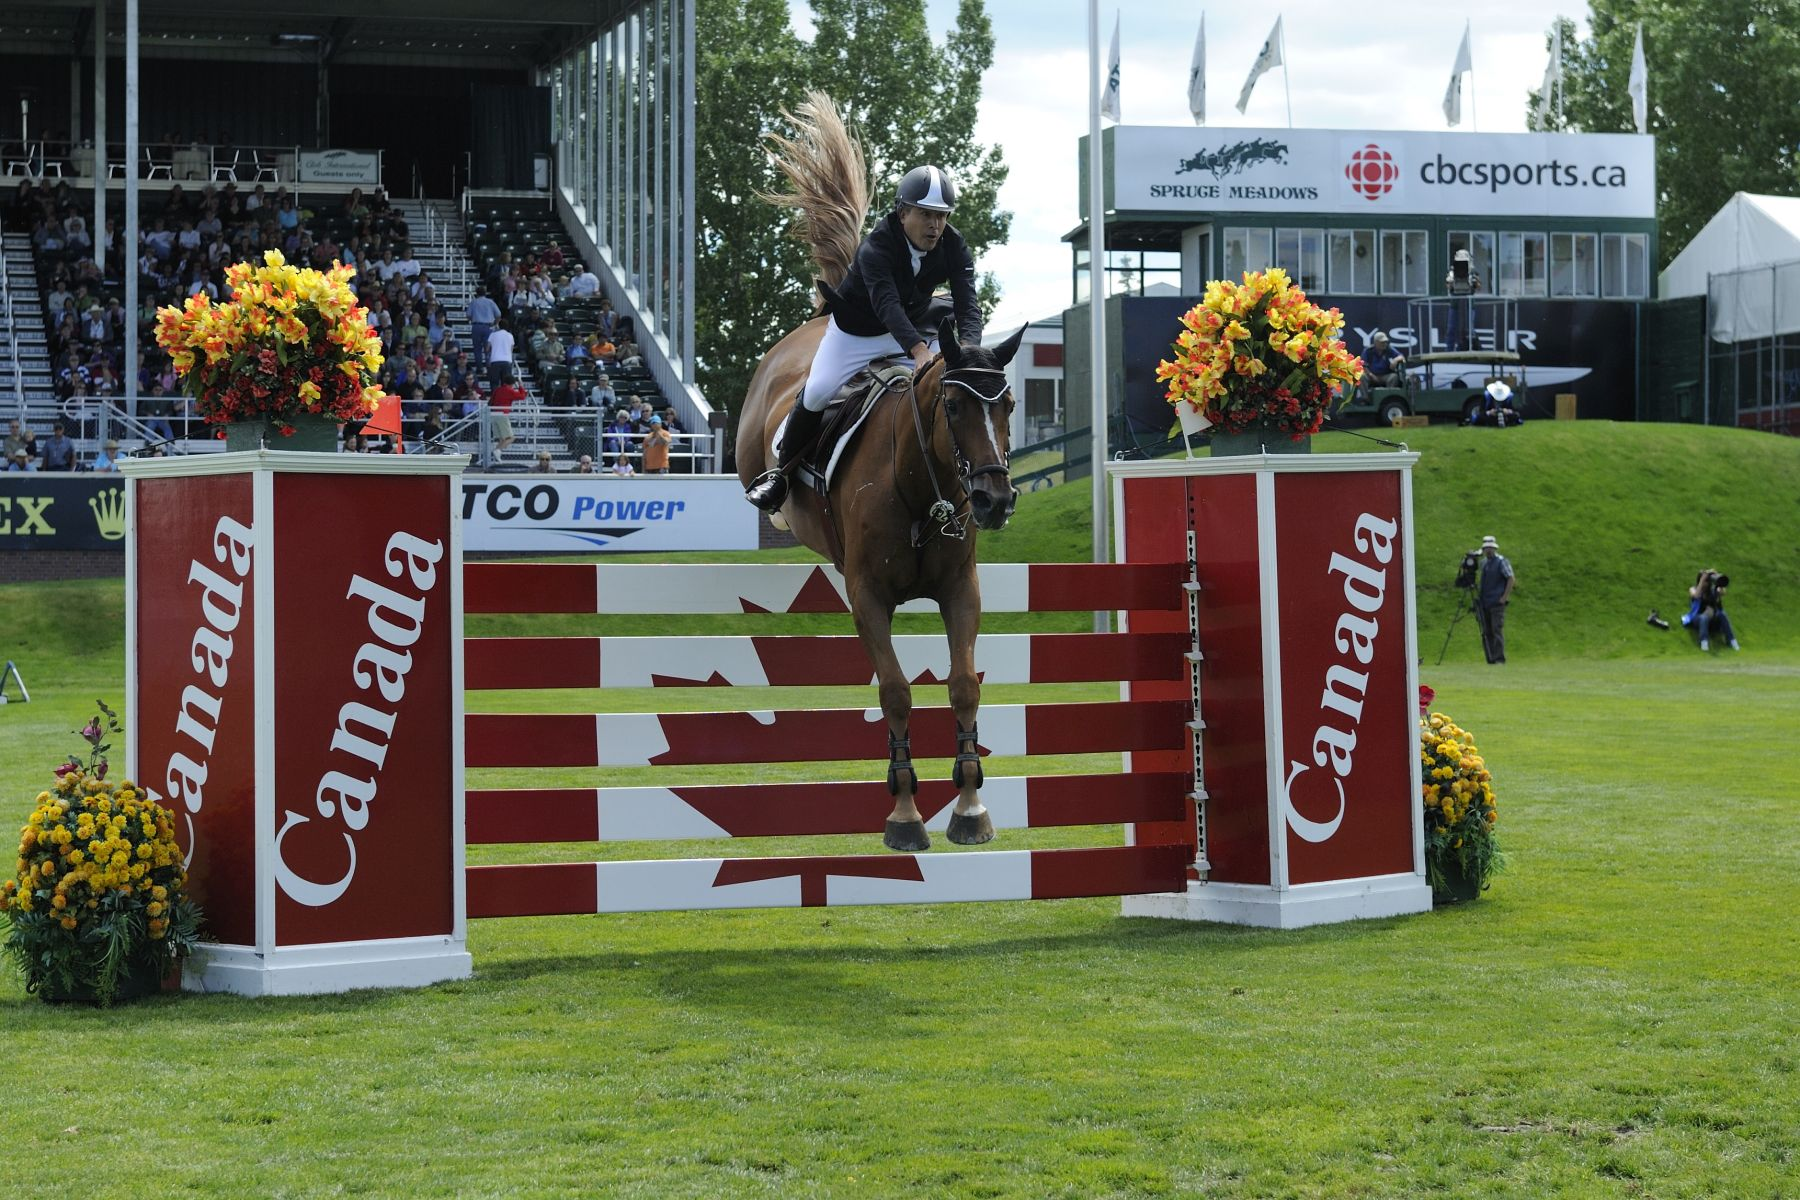 Located in Calgary, Spruce Meadows is committed to being the leading venue in the world for international horse sports.